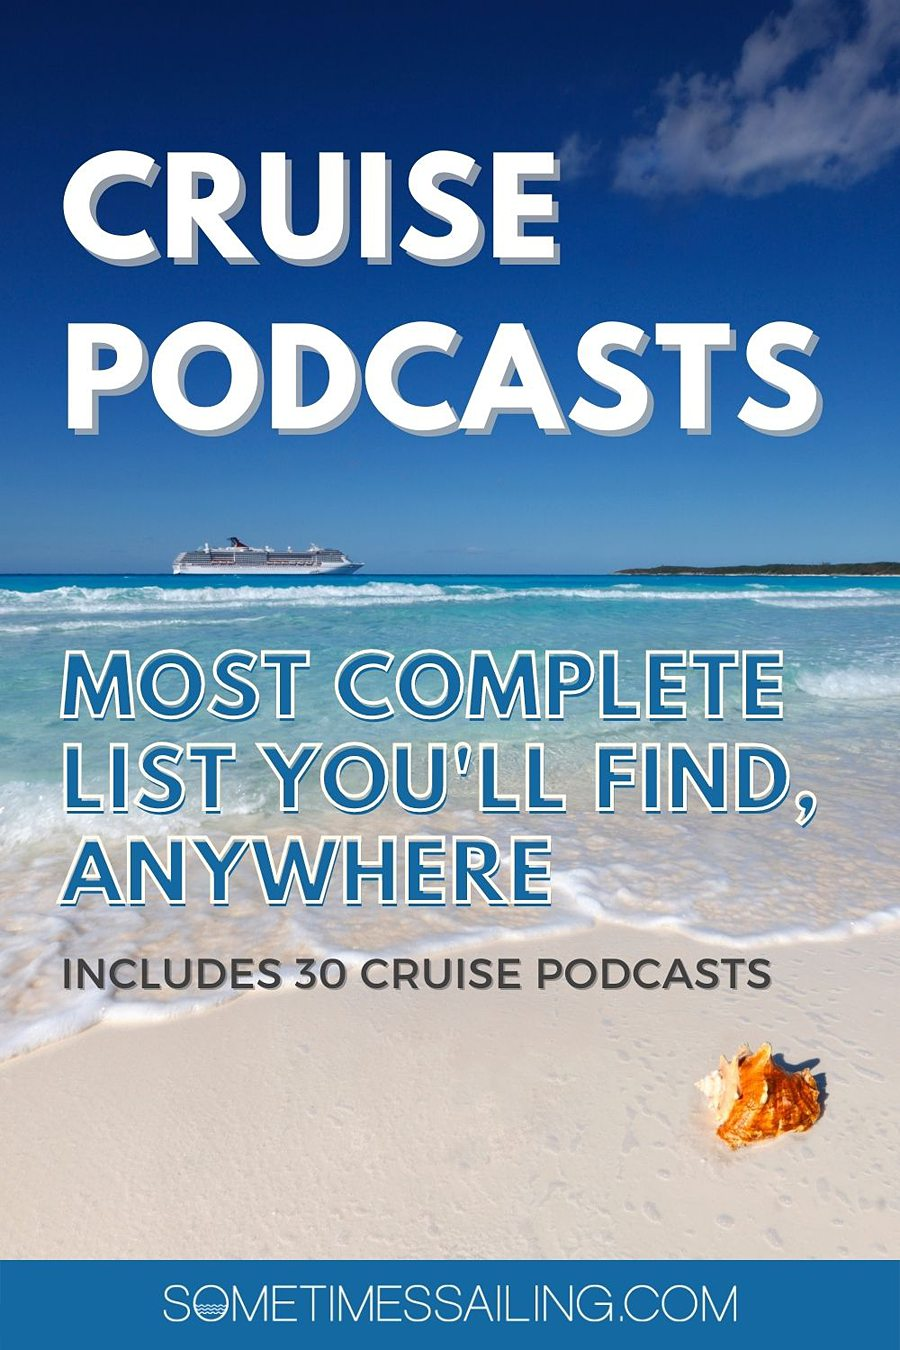 Cruise podcasts - the most complete list you'll find anywhere with a photo of the ocean and cruise ship in the distance.